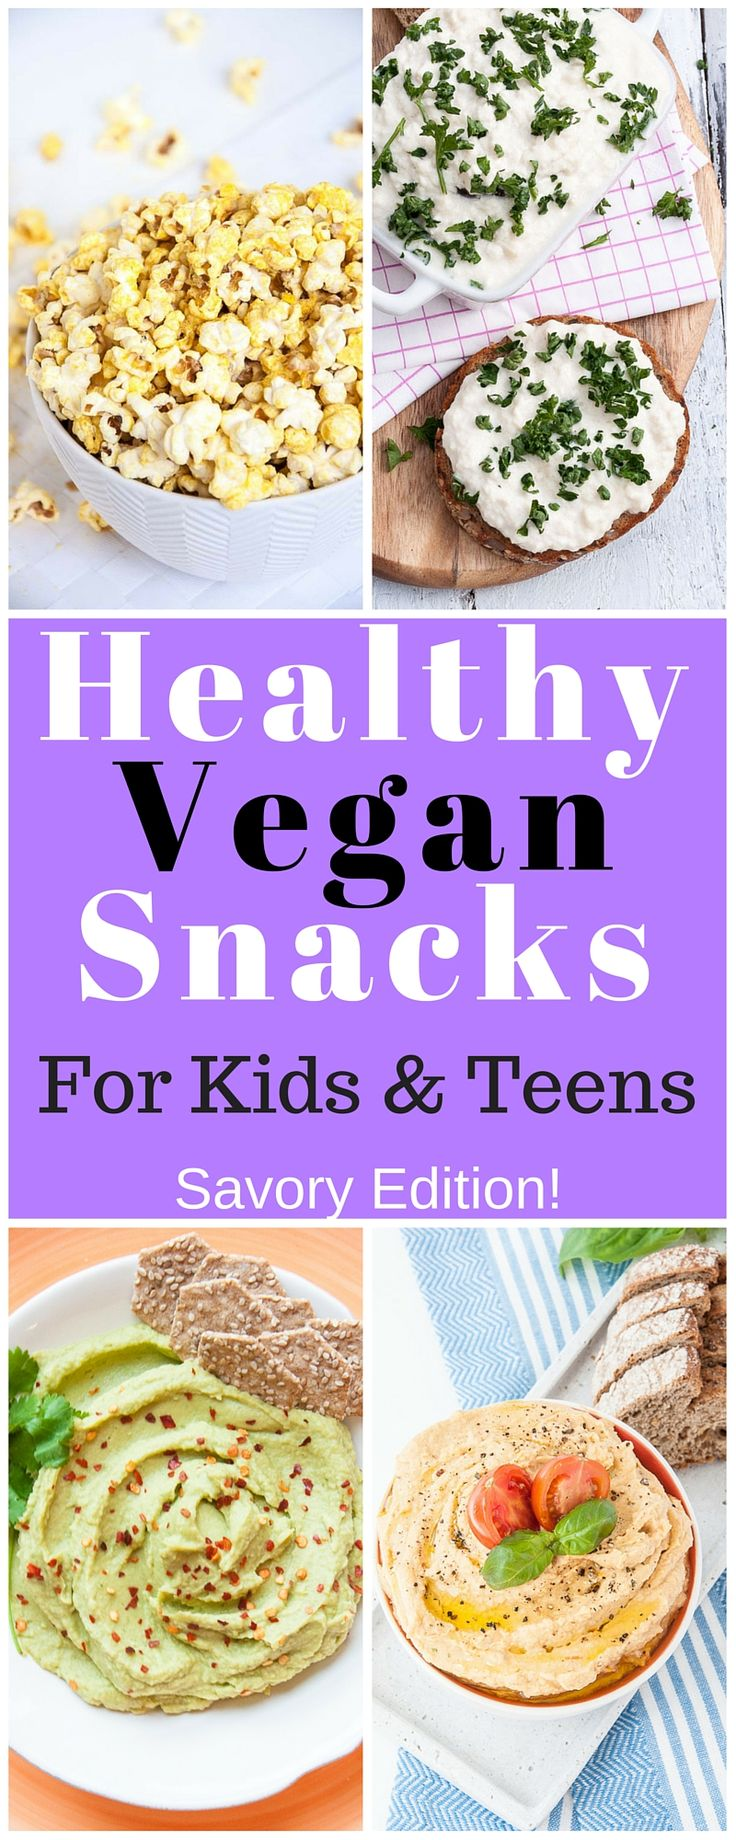 Healthy Vegan Snacks for Kids & Teens (and hungry adults!) Savory Edition- check out the sweet one too!   VeganFamilyRecipes.com   #snack #after school